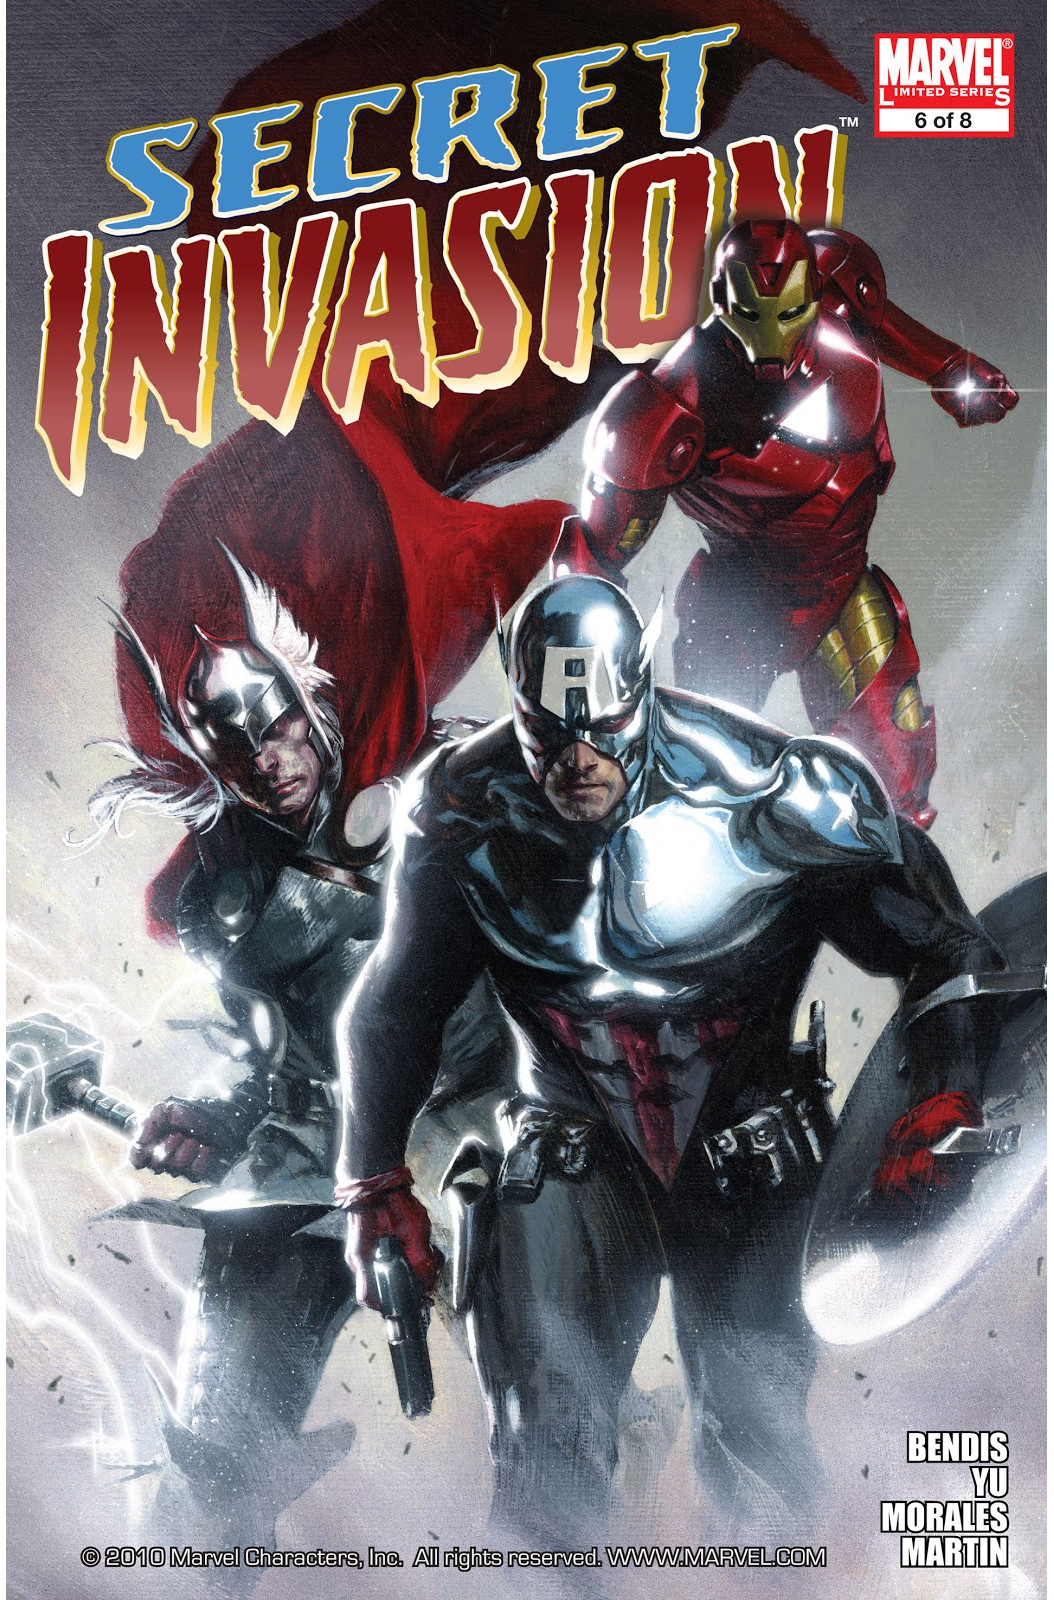 Copertina di Secret Invasion 6 del 2008, di Gabriele Dell'Otto